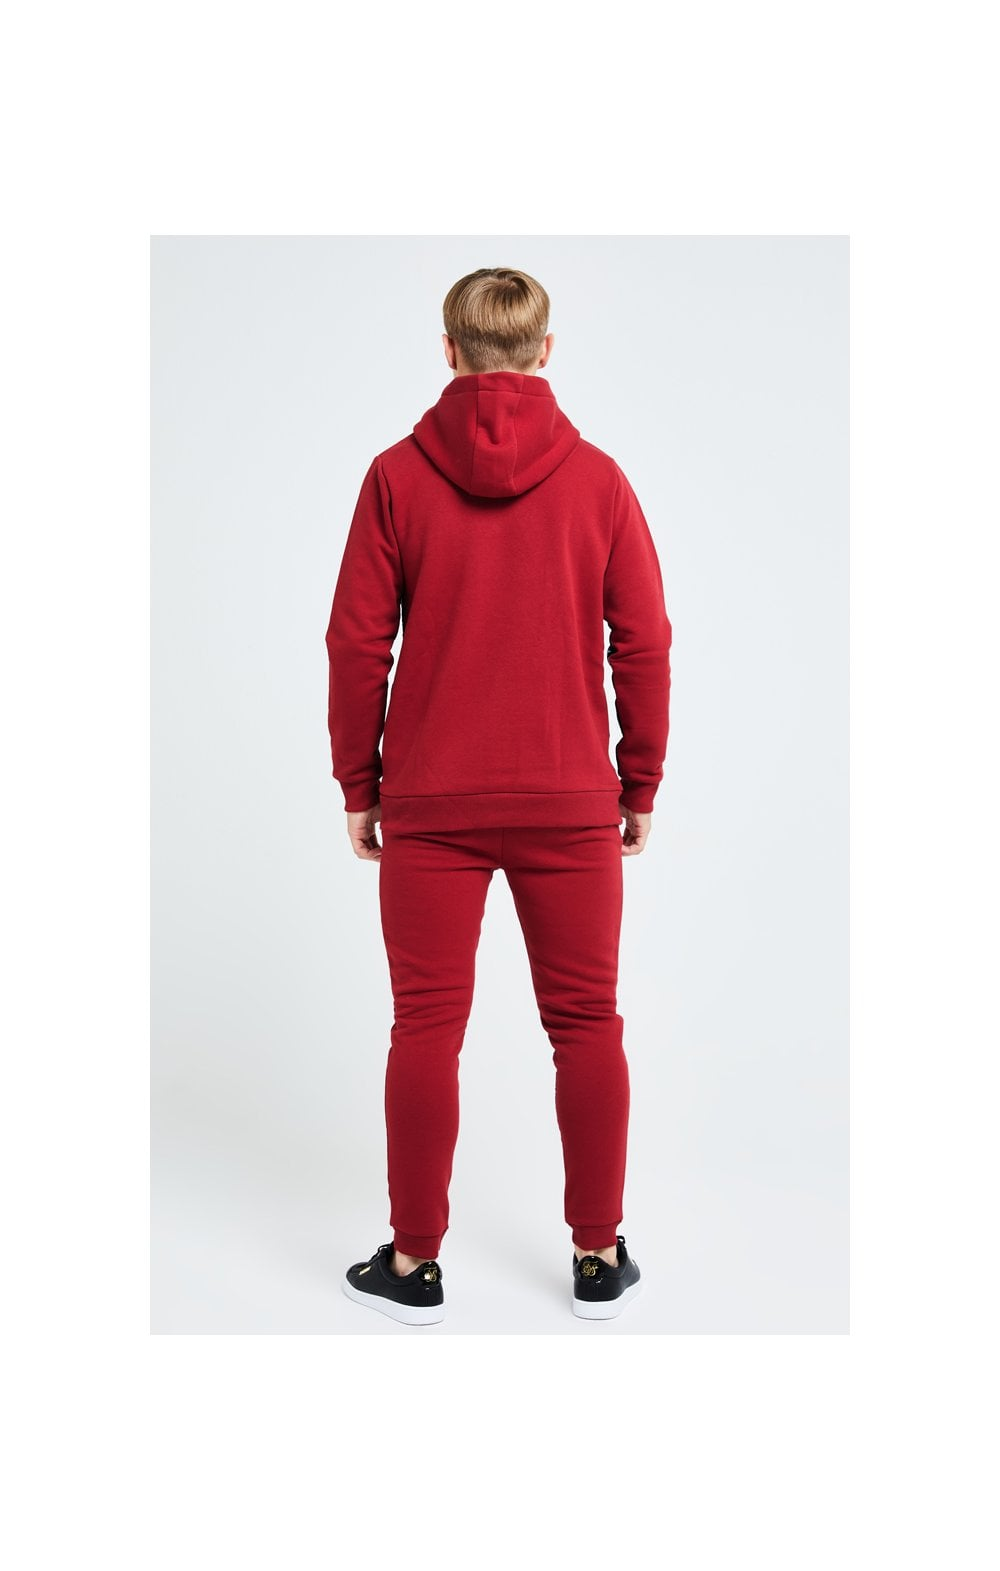 Illusive London Gravity Overhead Hoodie - Red (5)